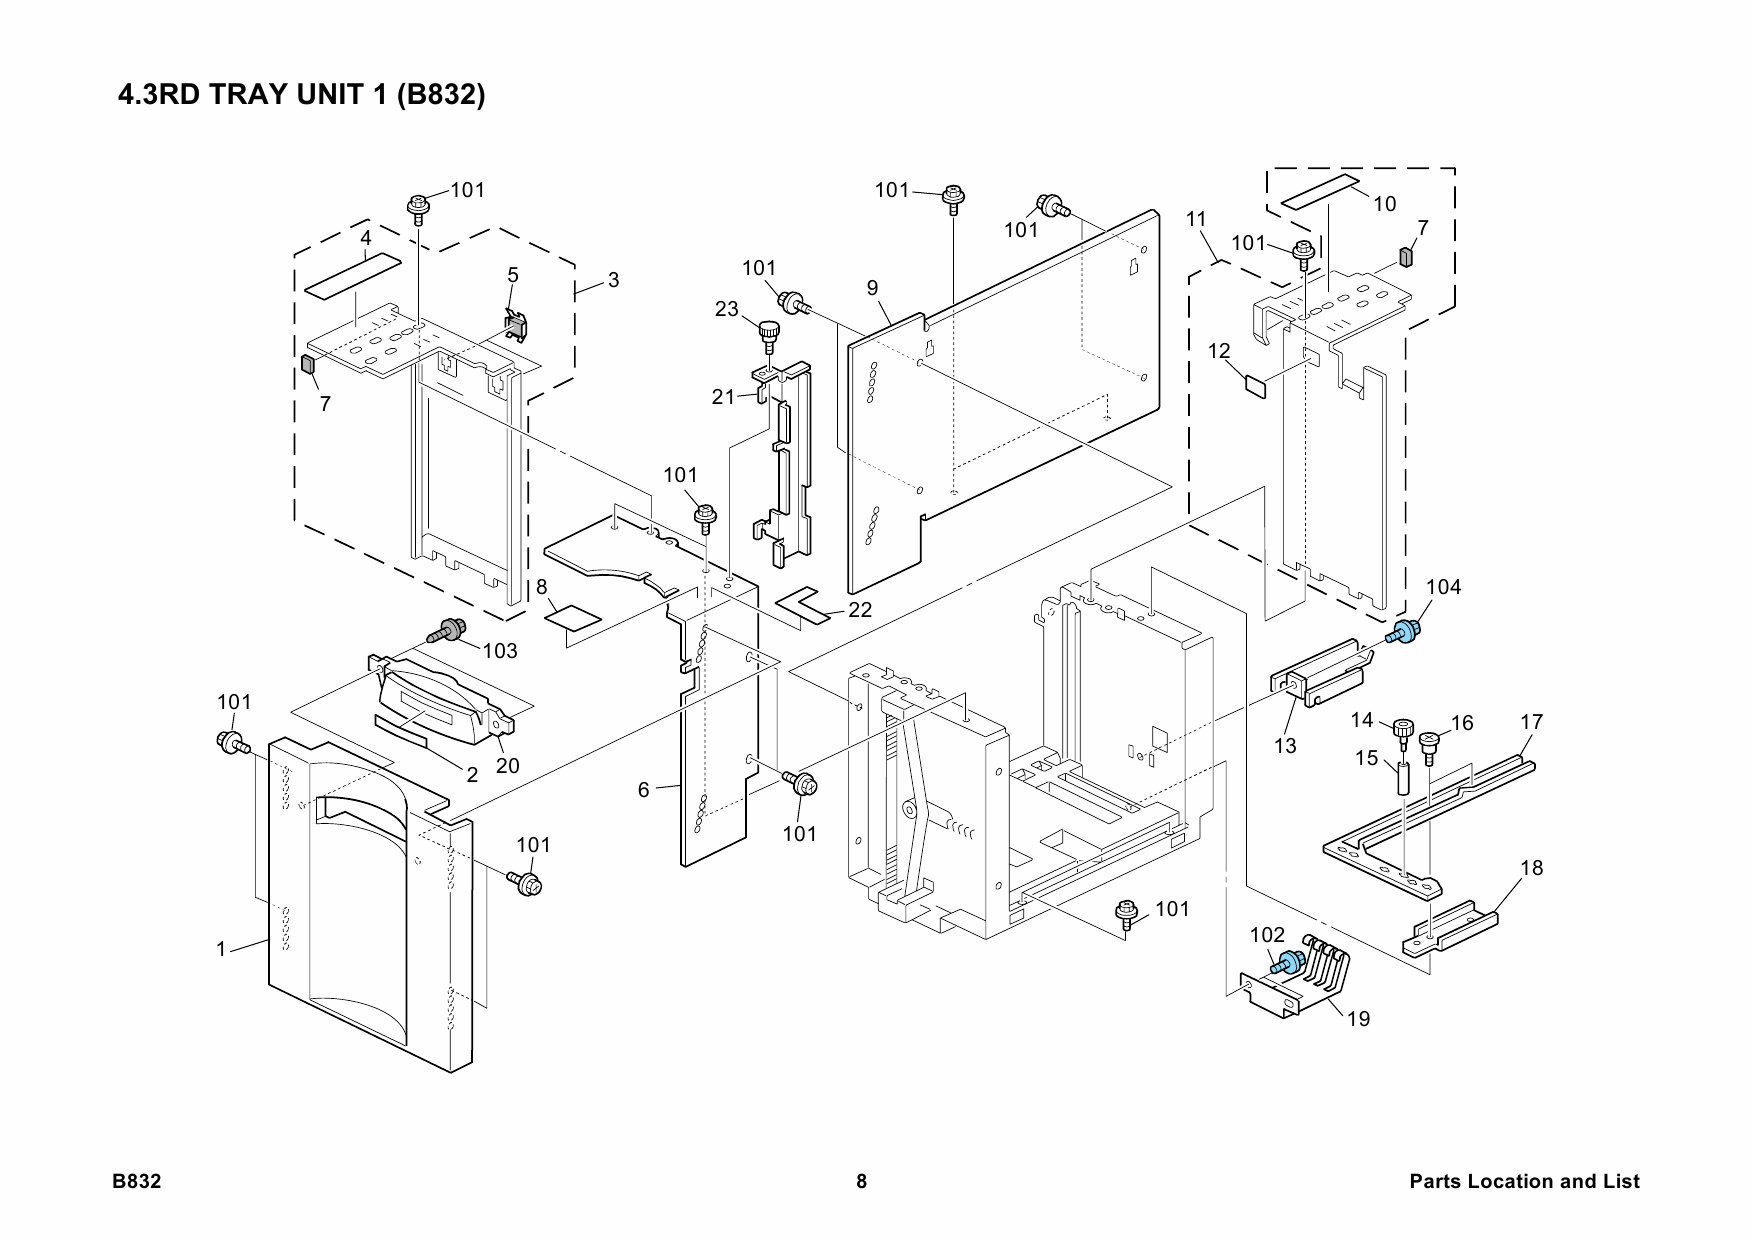 RICOH Options B832 LCIT-RT5000 Parts Catalog PDF download